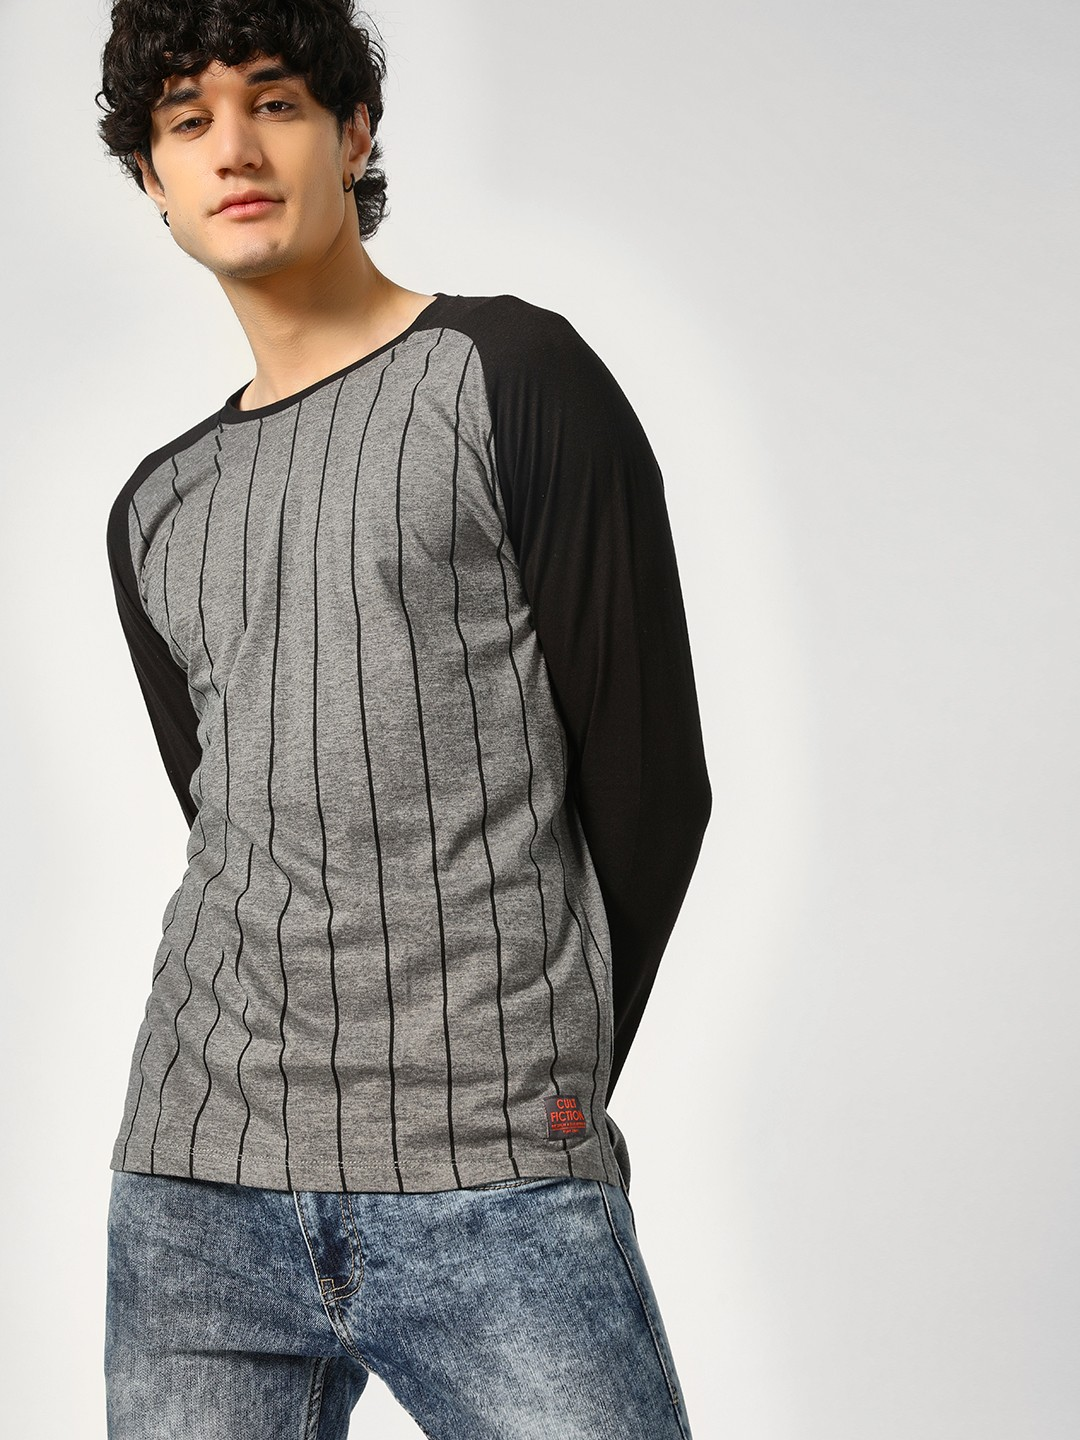 Cult Fiction Grey Striped Raglan Sleeves T-Shirt 1